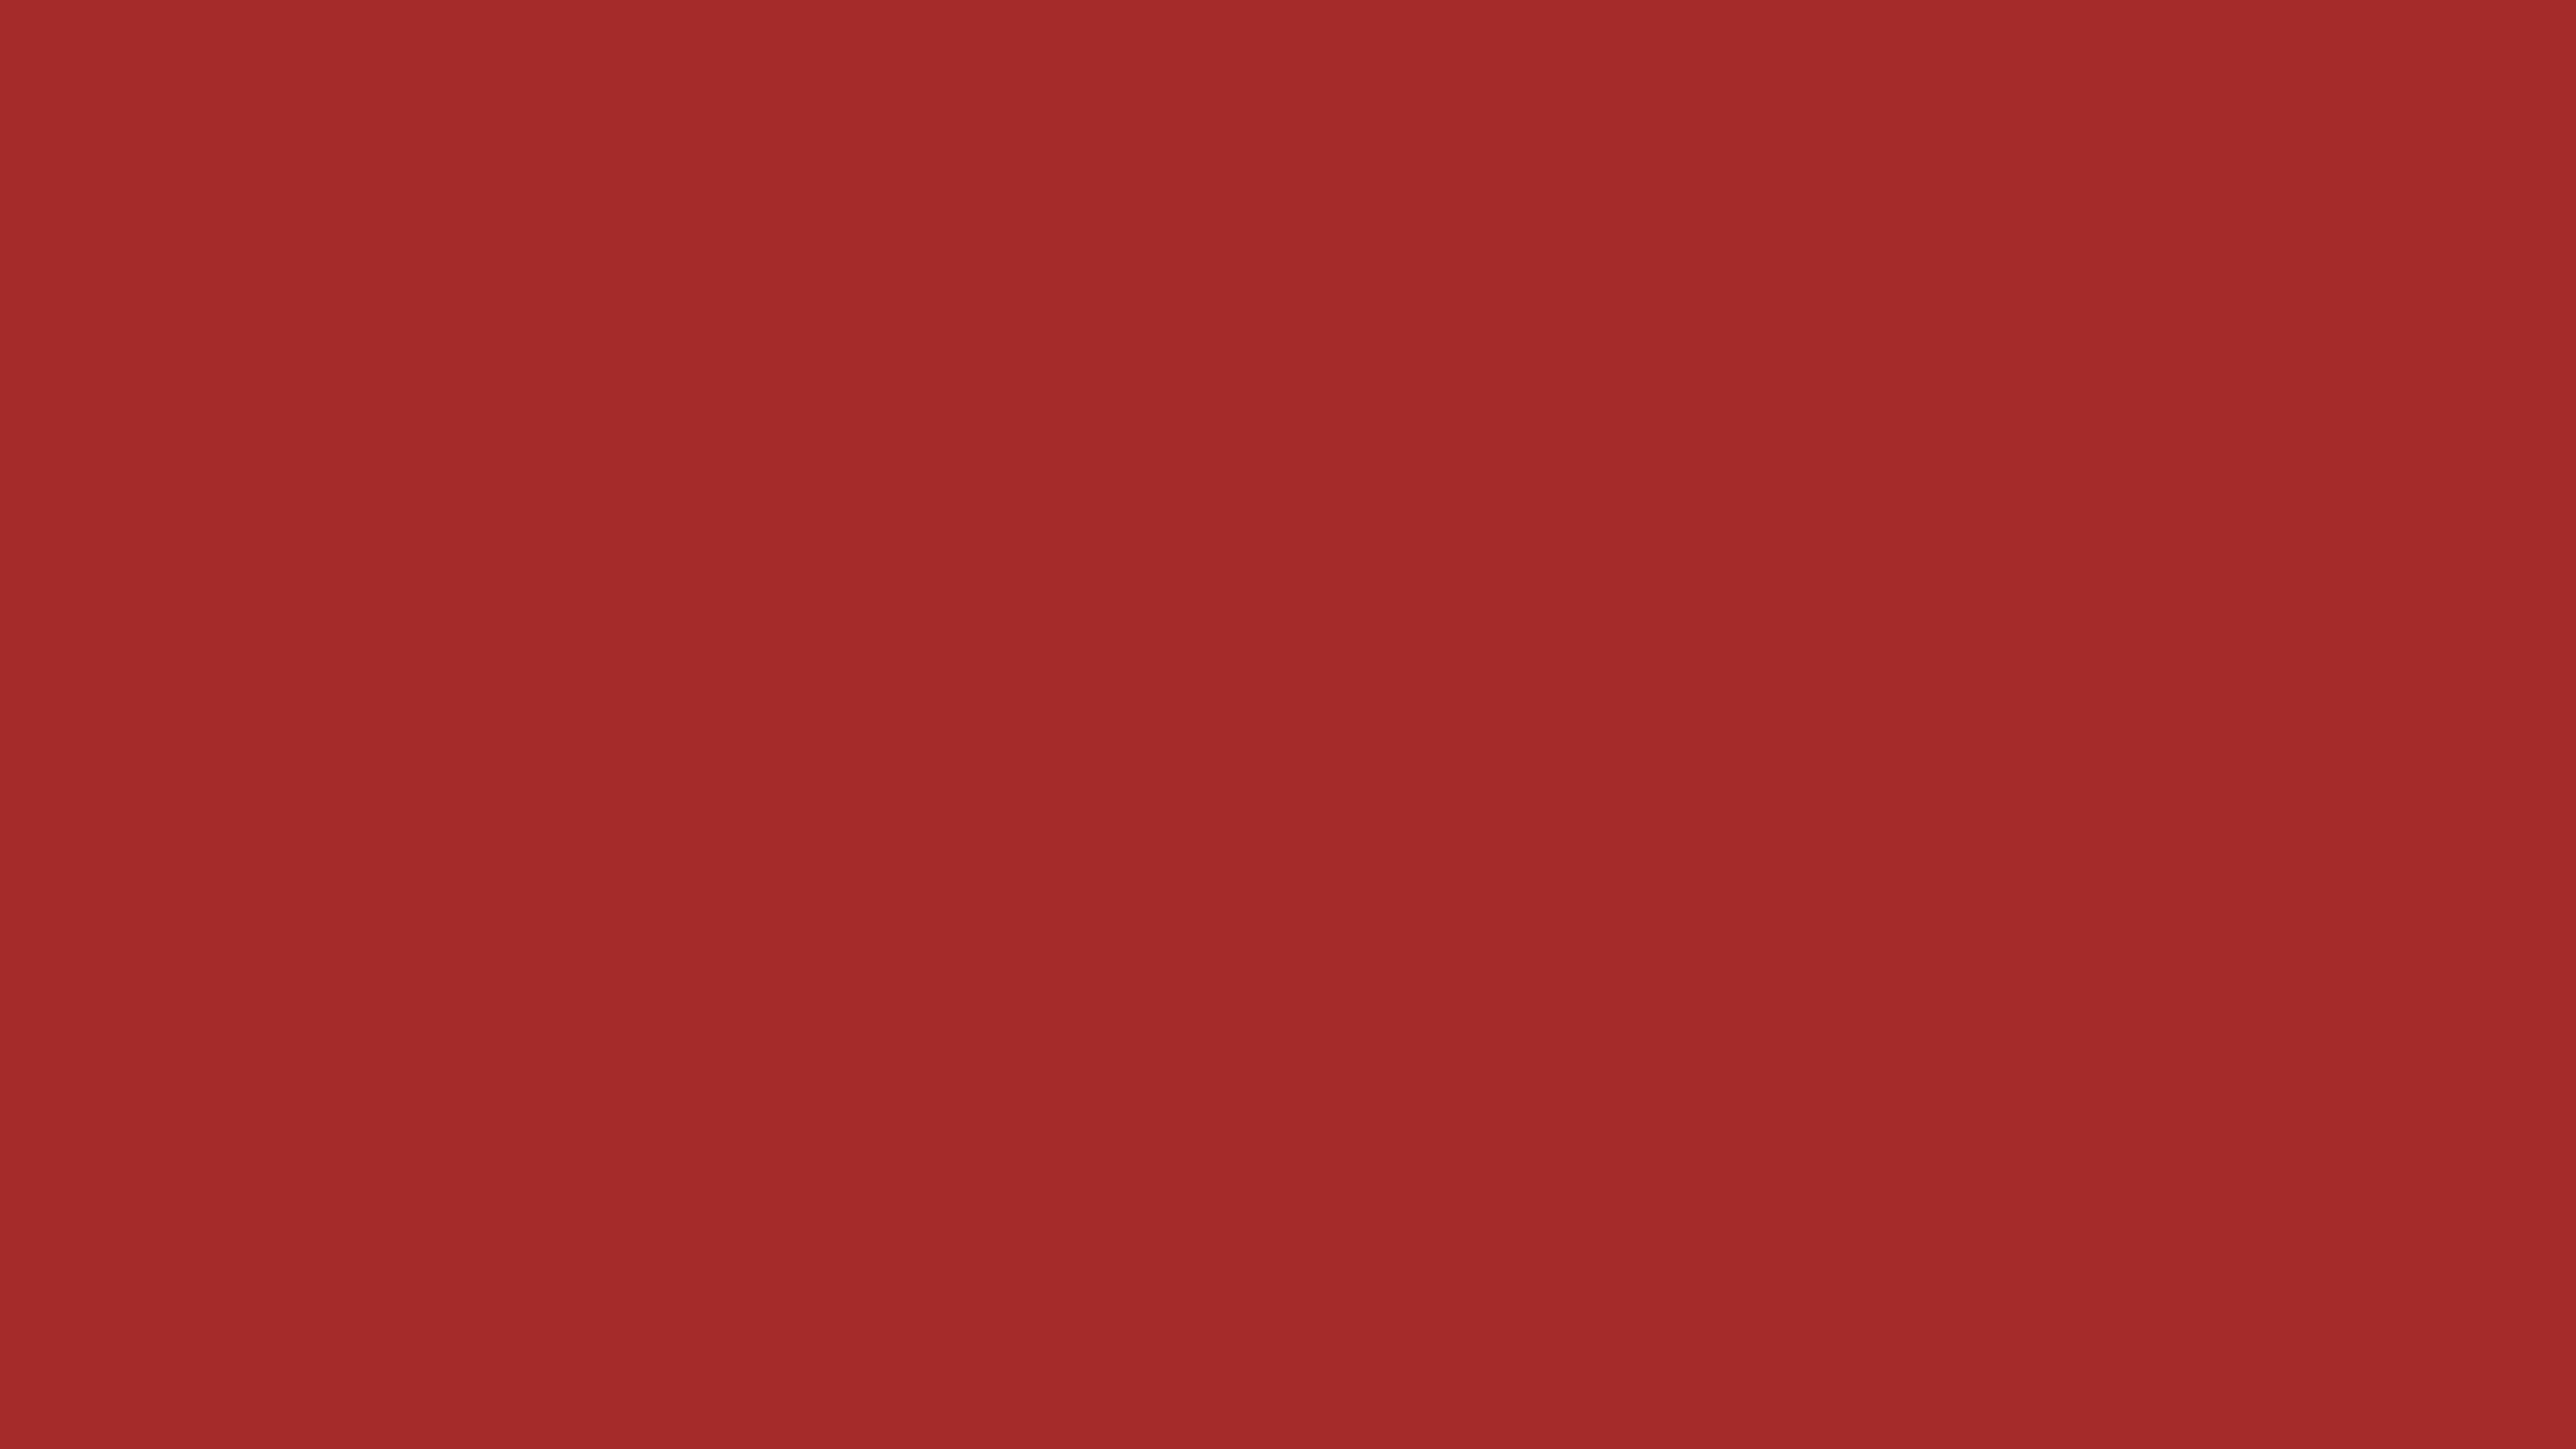 5120x2880 Red-brown Solid Color Background